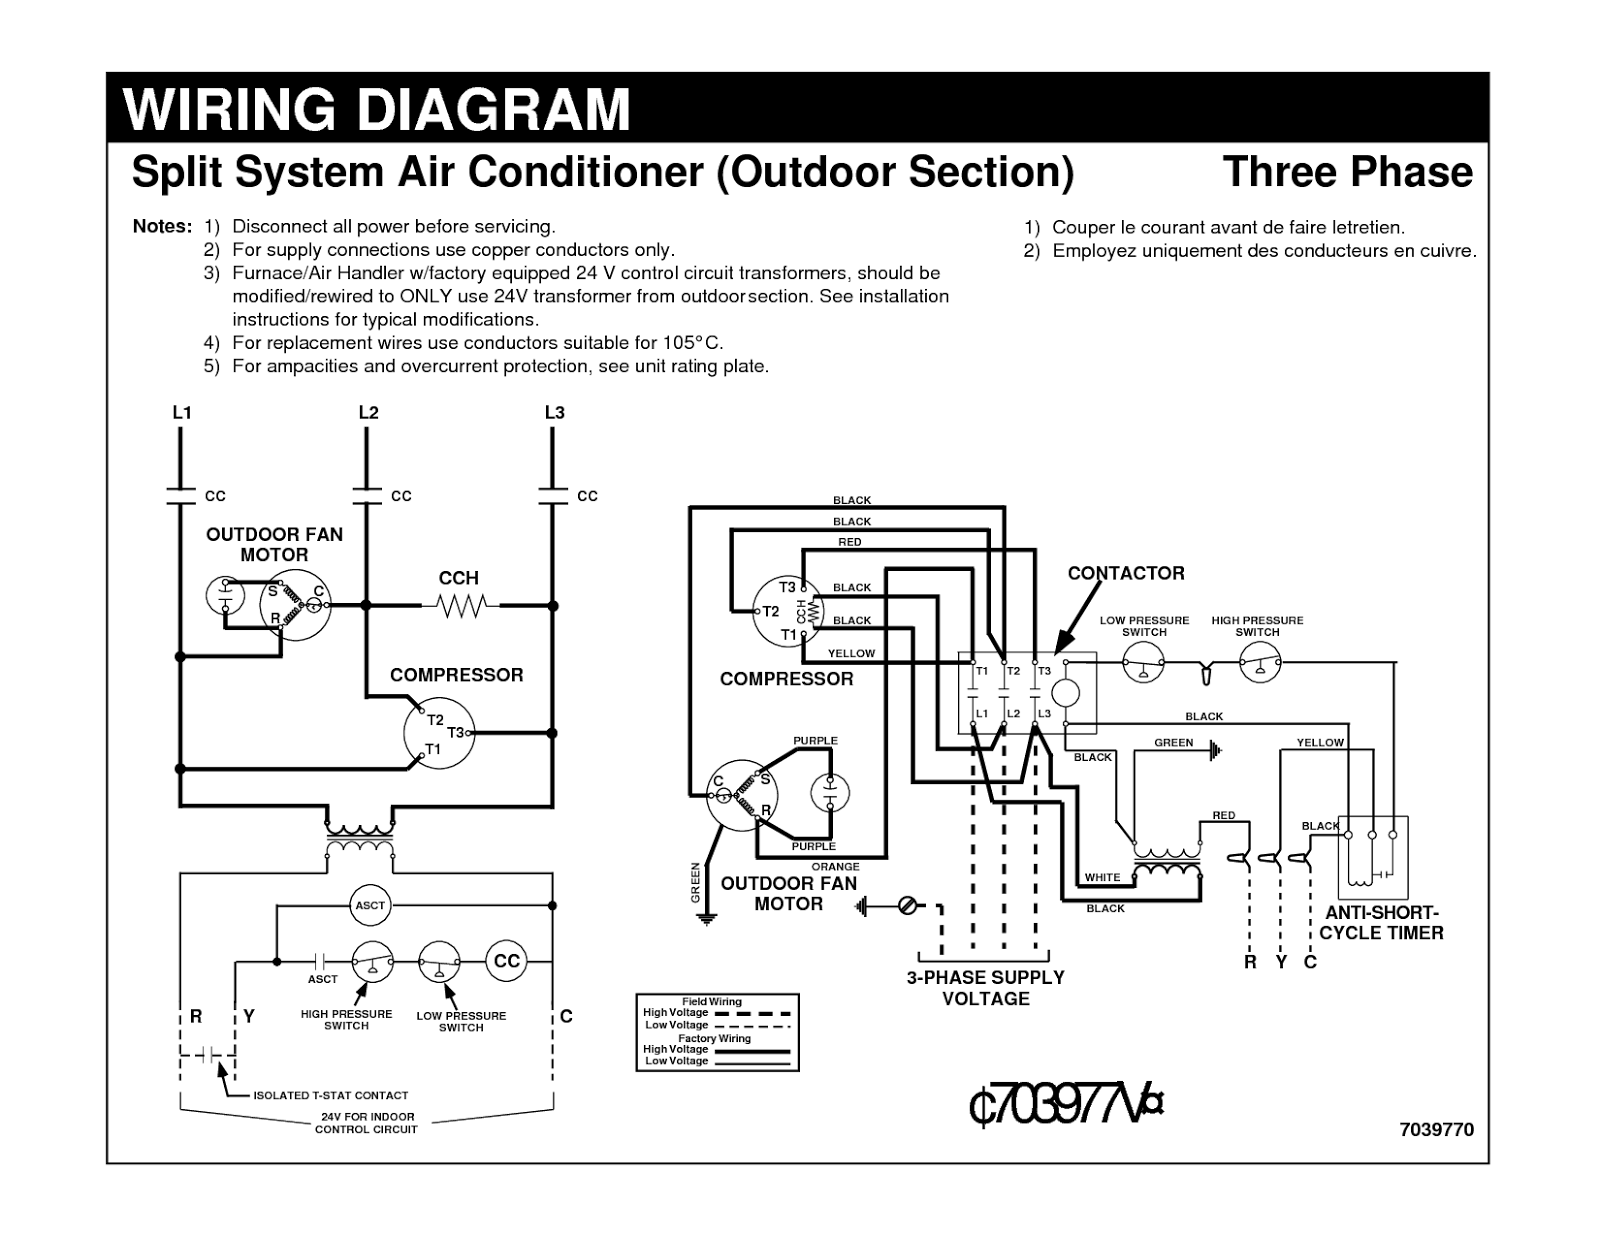 Electrical Wiring Diagrams for Air Conditioning Systems